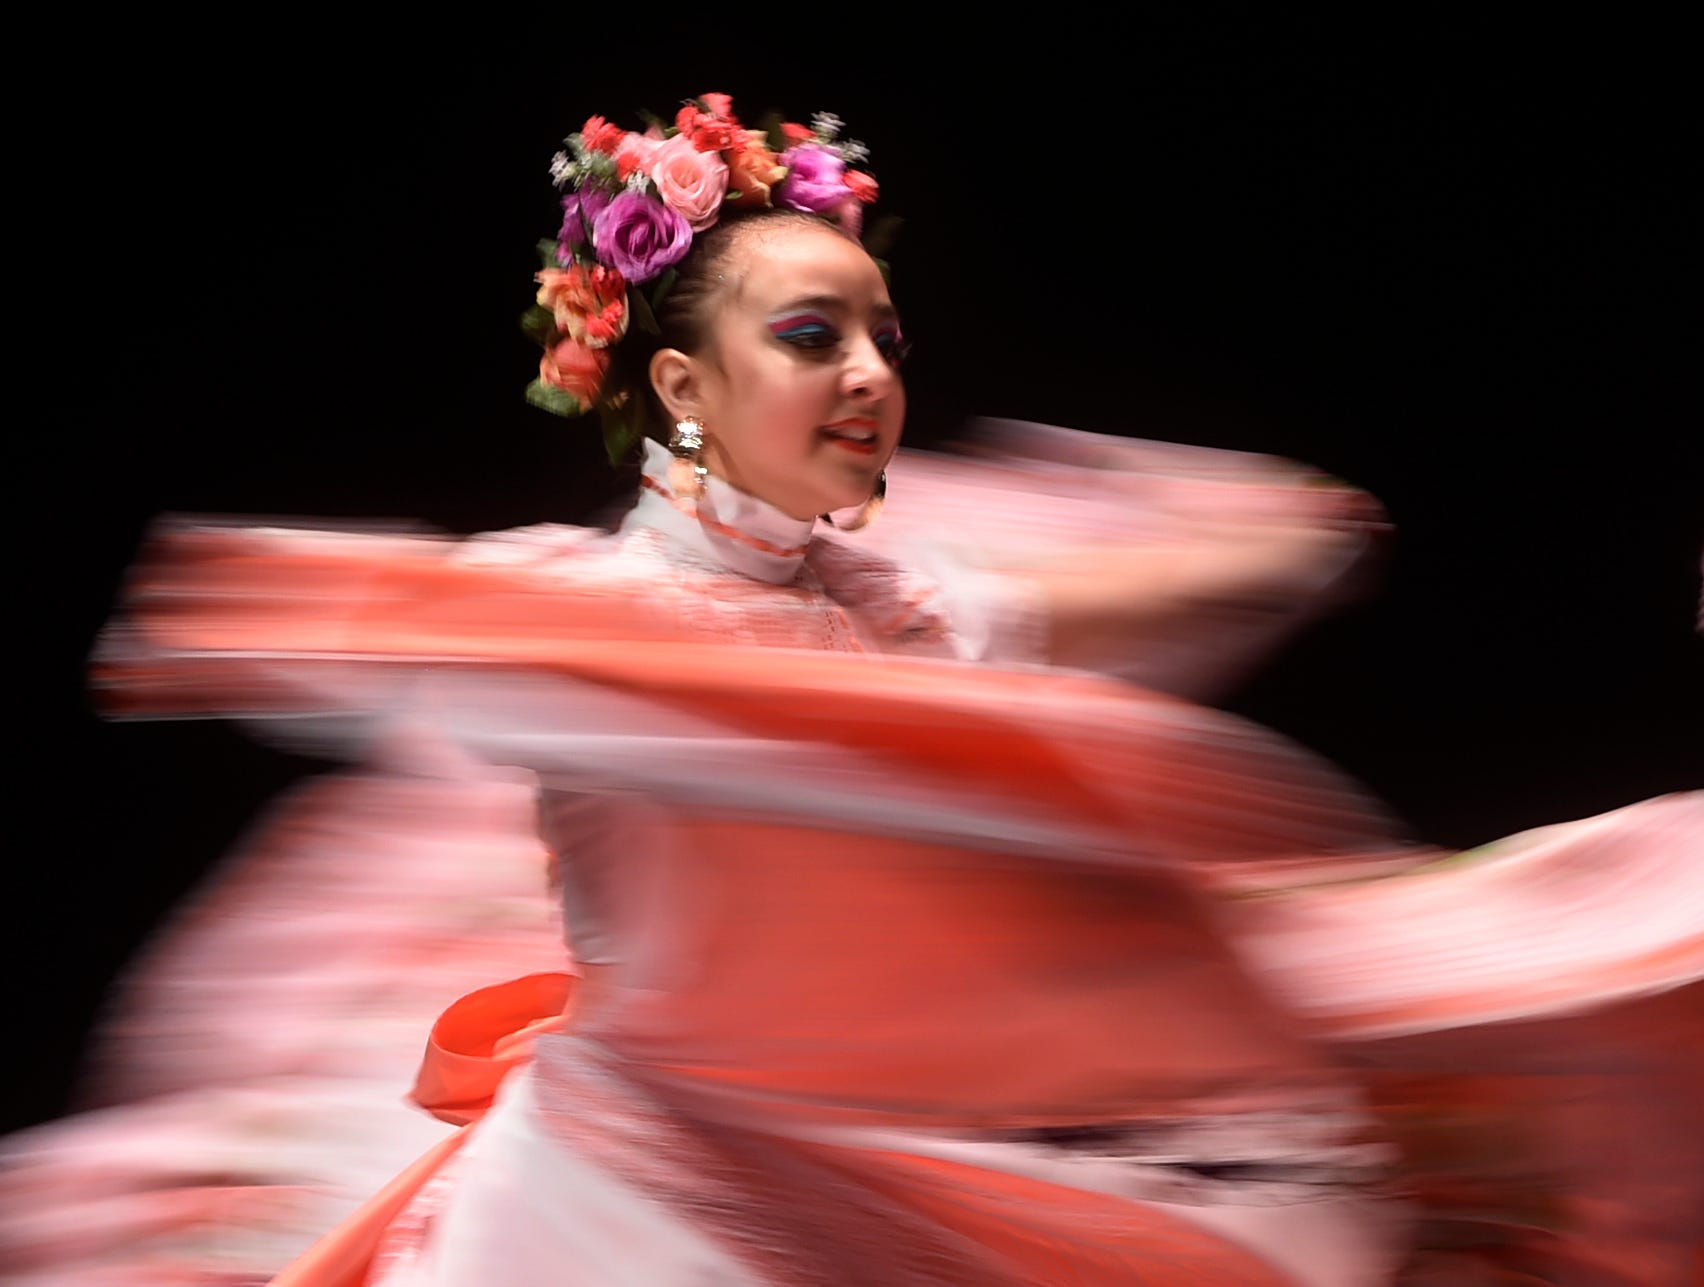 Heleny Mendoza dances during the Alcorta's Compania de danza 7th annual Competencia Folklorica de Tejas at the Selena Auditorium, Saturday, March 23, 2019. Dancers dressed in colorful outfits that represents various regions in Mexico.